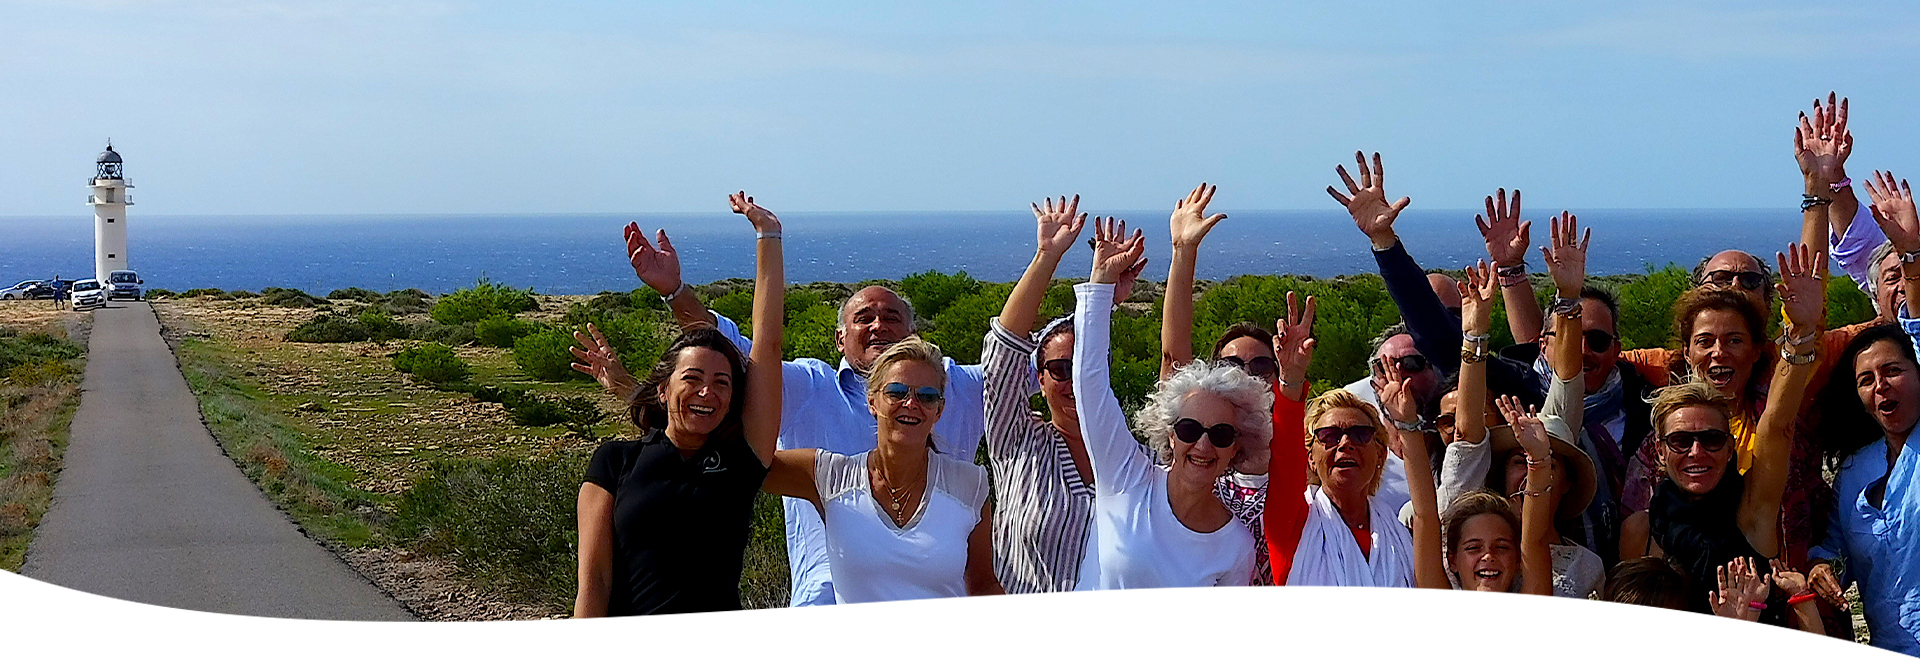 Travel for groups in Formentera